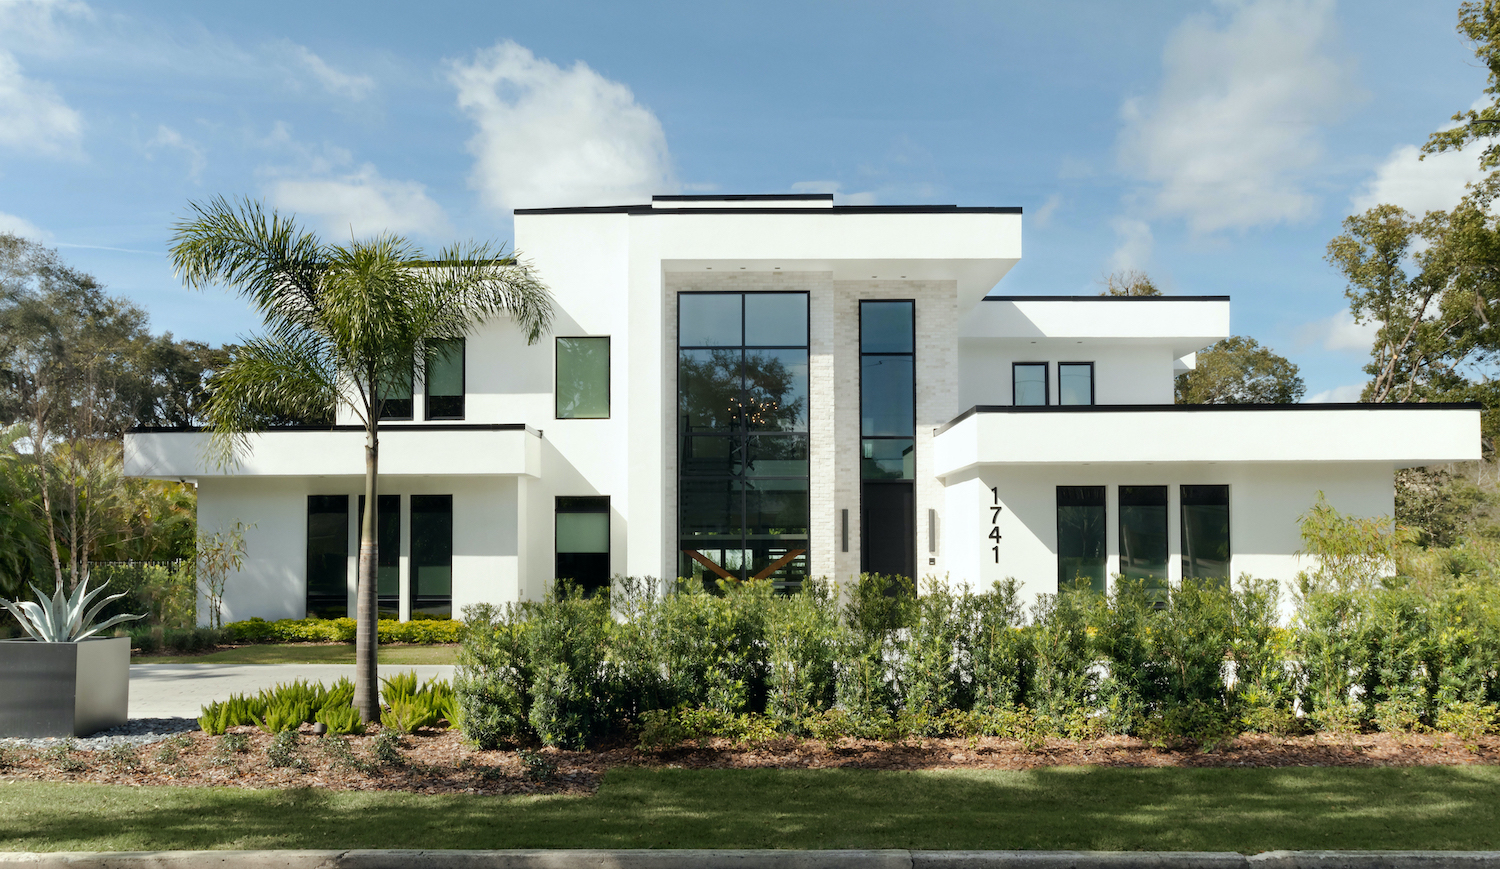 Home in Winter Park purchased by Austin Rivers.